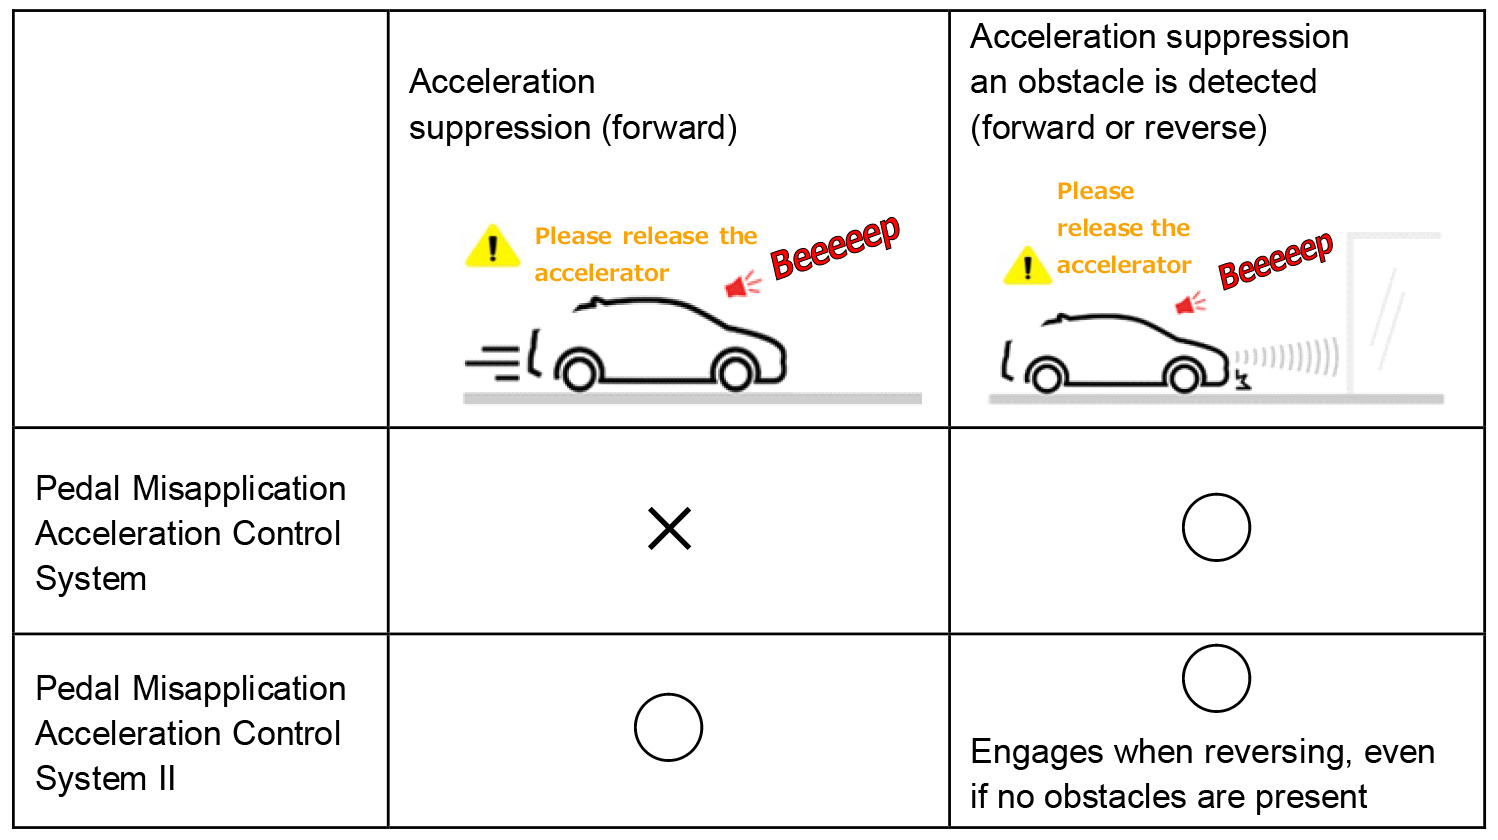 Toyota-Acceleration-Suppression-System_03_en.jpg